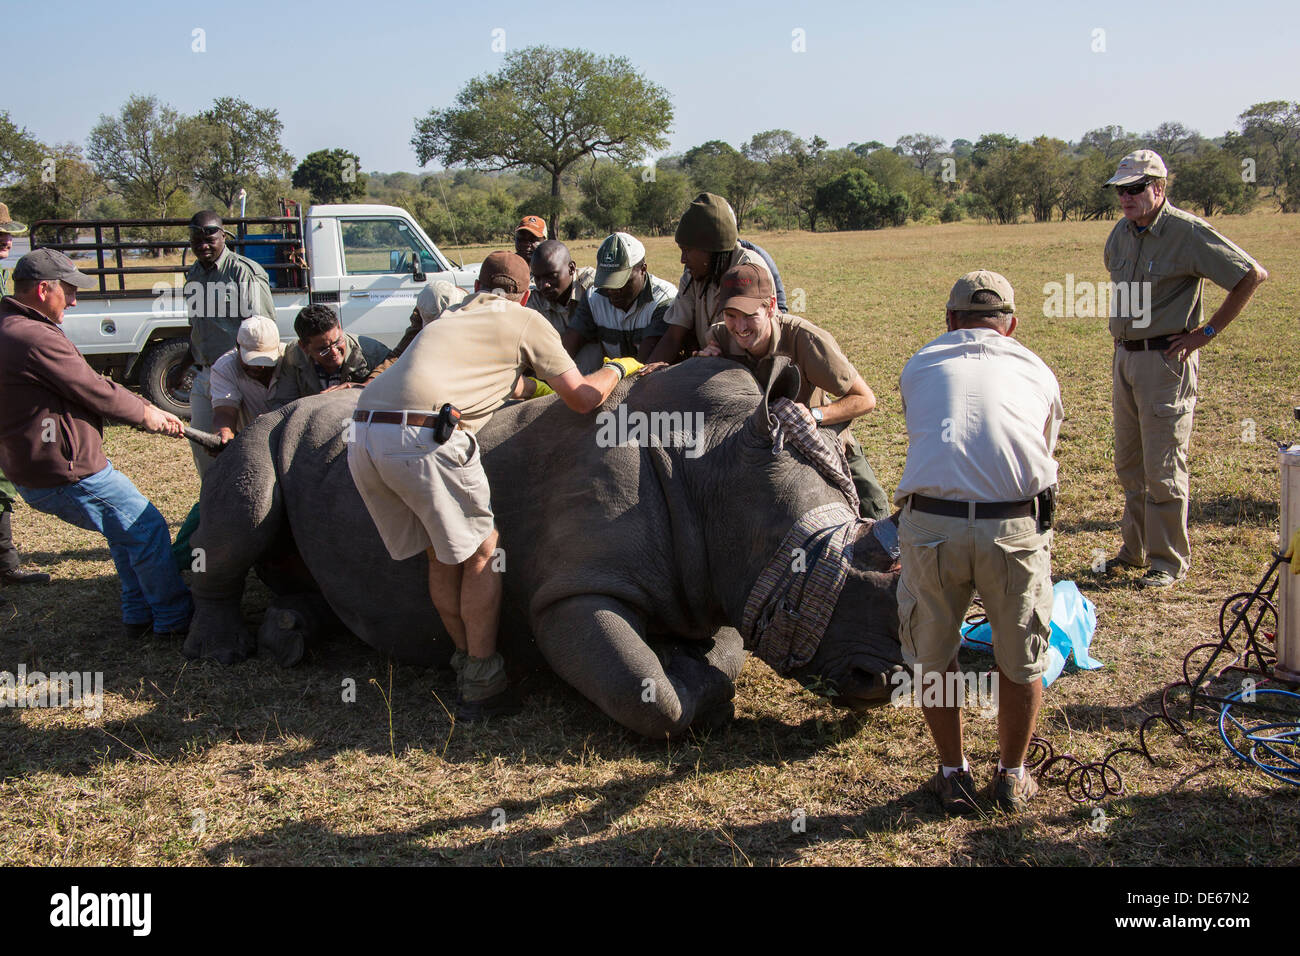 A tranquilized rhino bull being handled by fieldworkers during a rhino-horn treatment - Stock Image